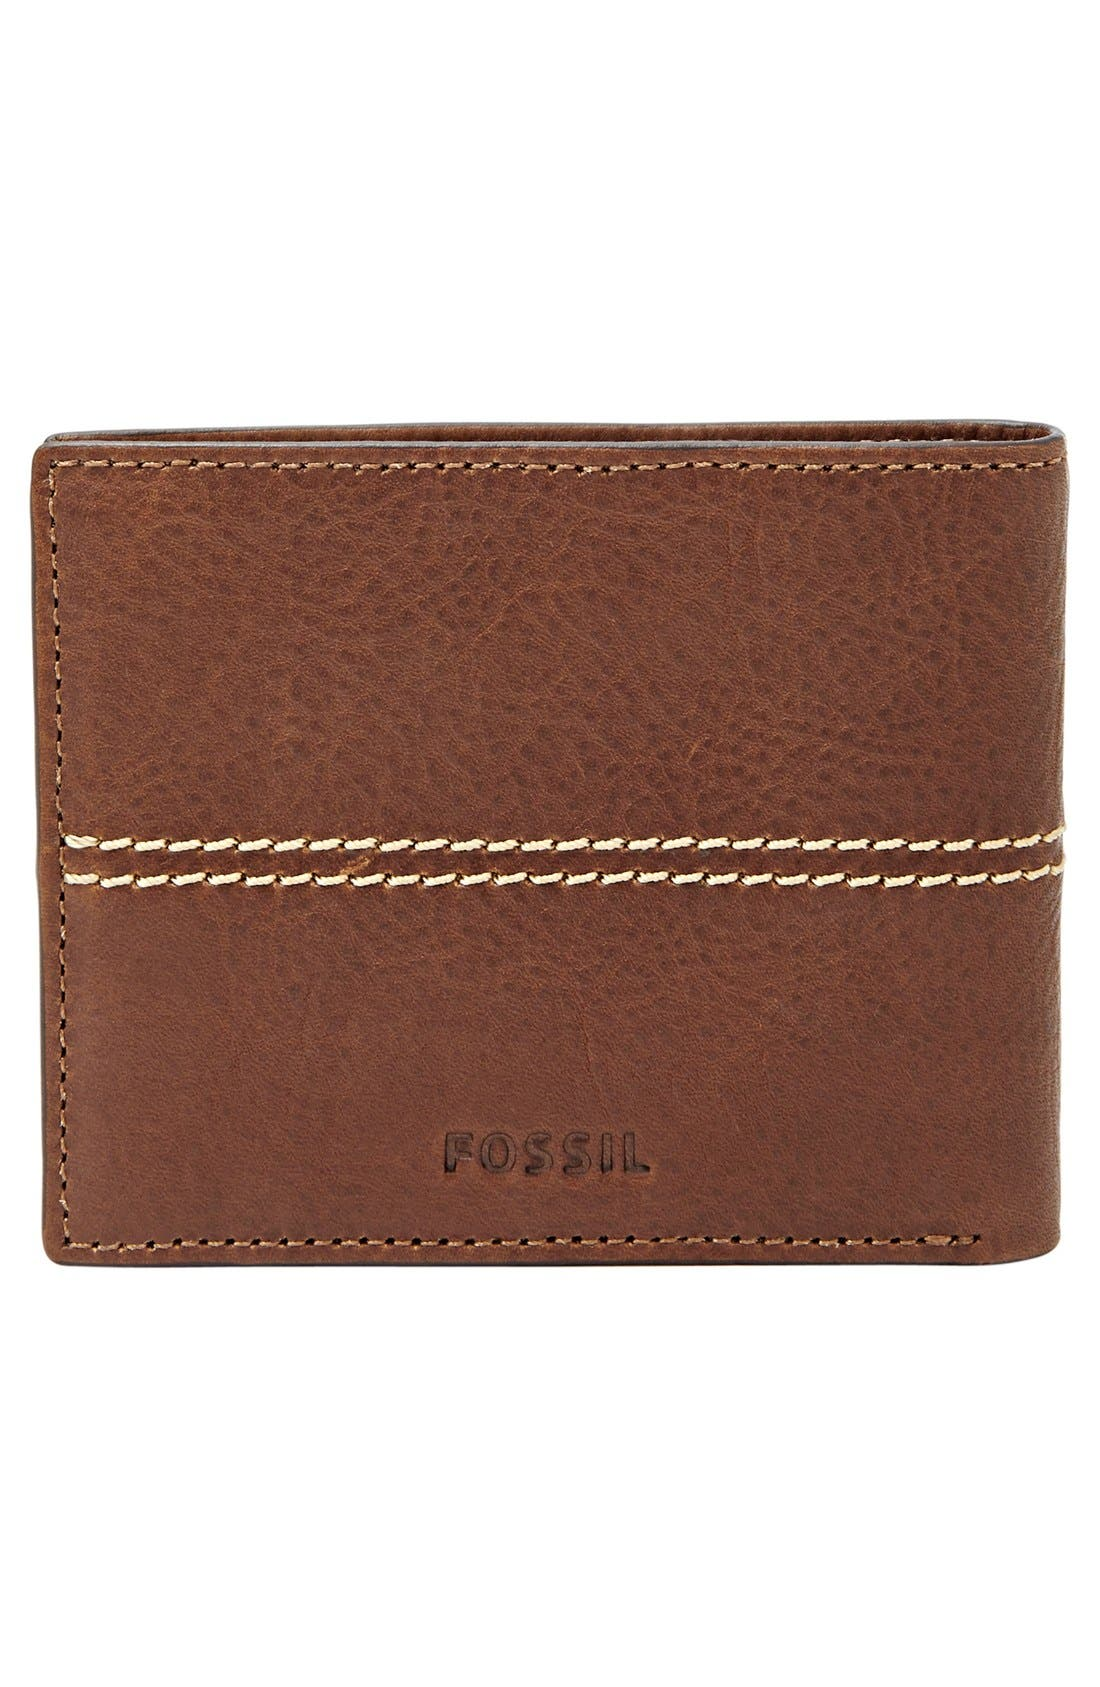 'Turk' Leather RFID Wallet,                             Alternate thumbnail 4, color,                             Brown